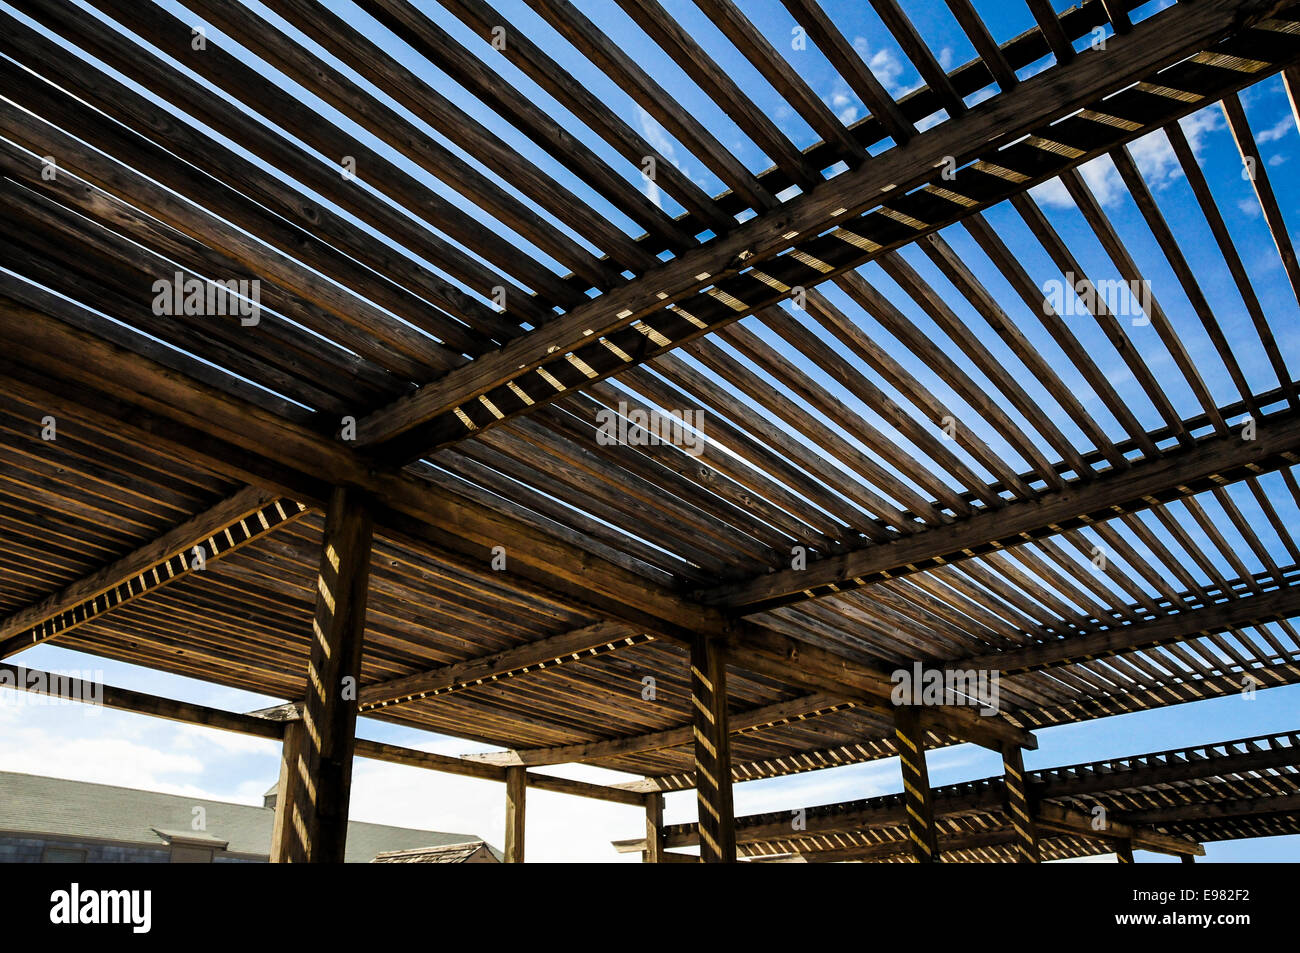 https www alamy com stock photo large wooden slat roof over a patio area with sunlight and blue sky 74550982 html